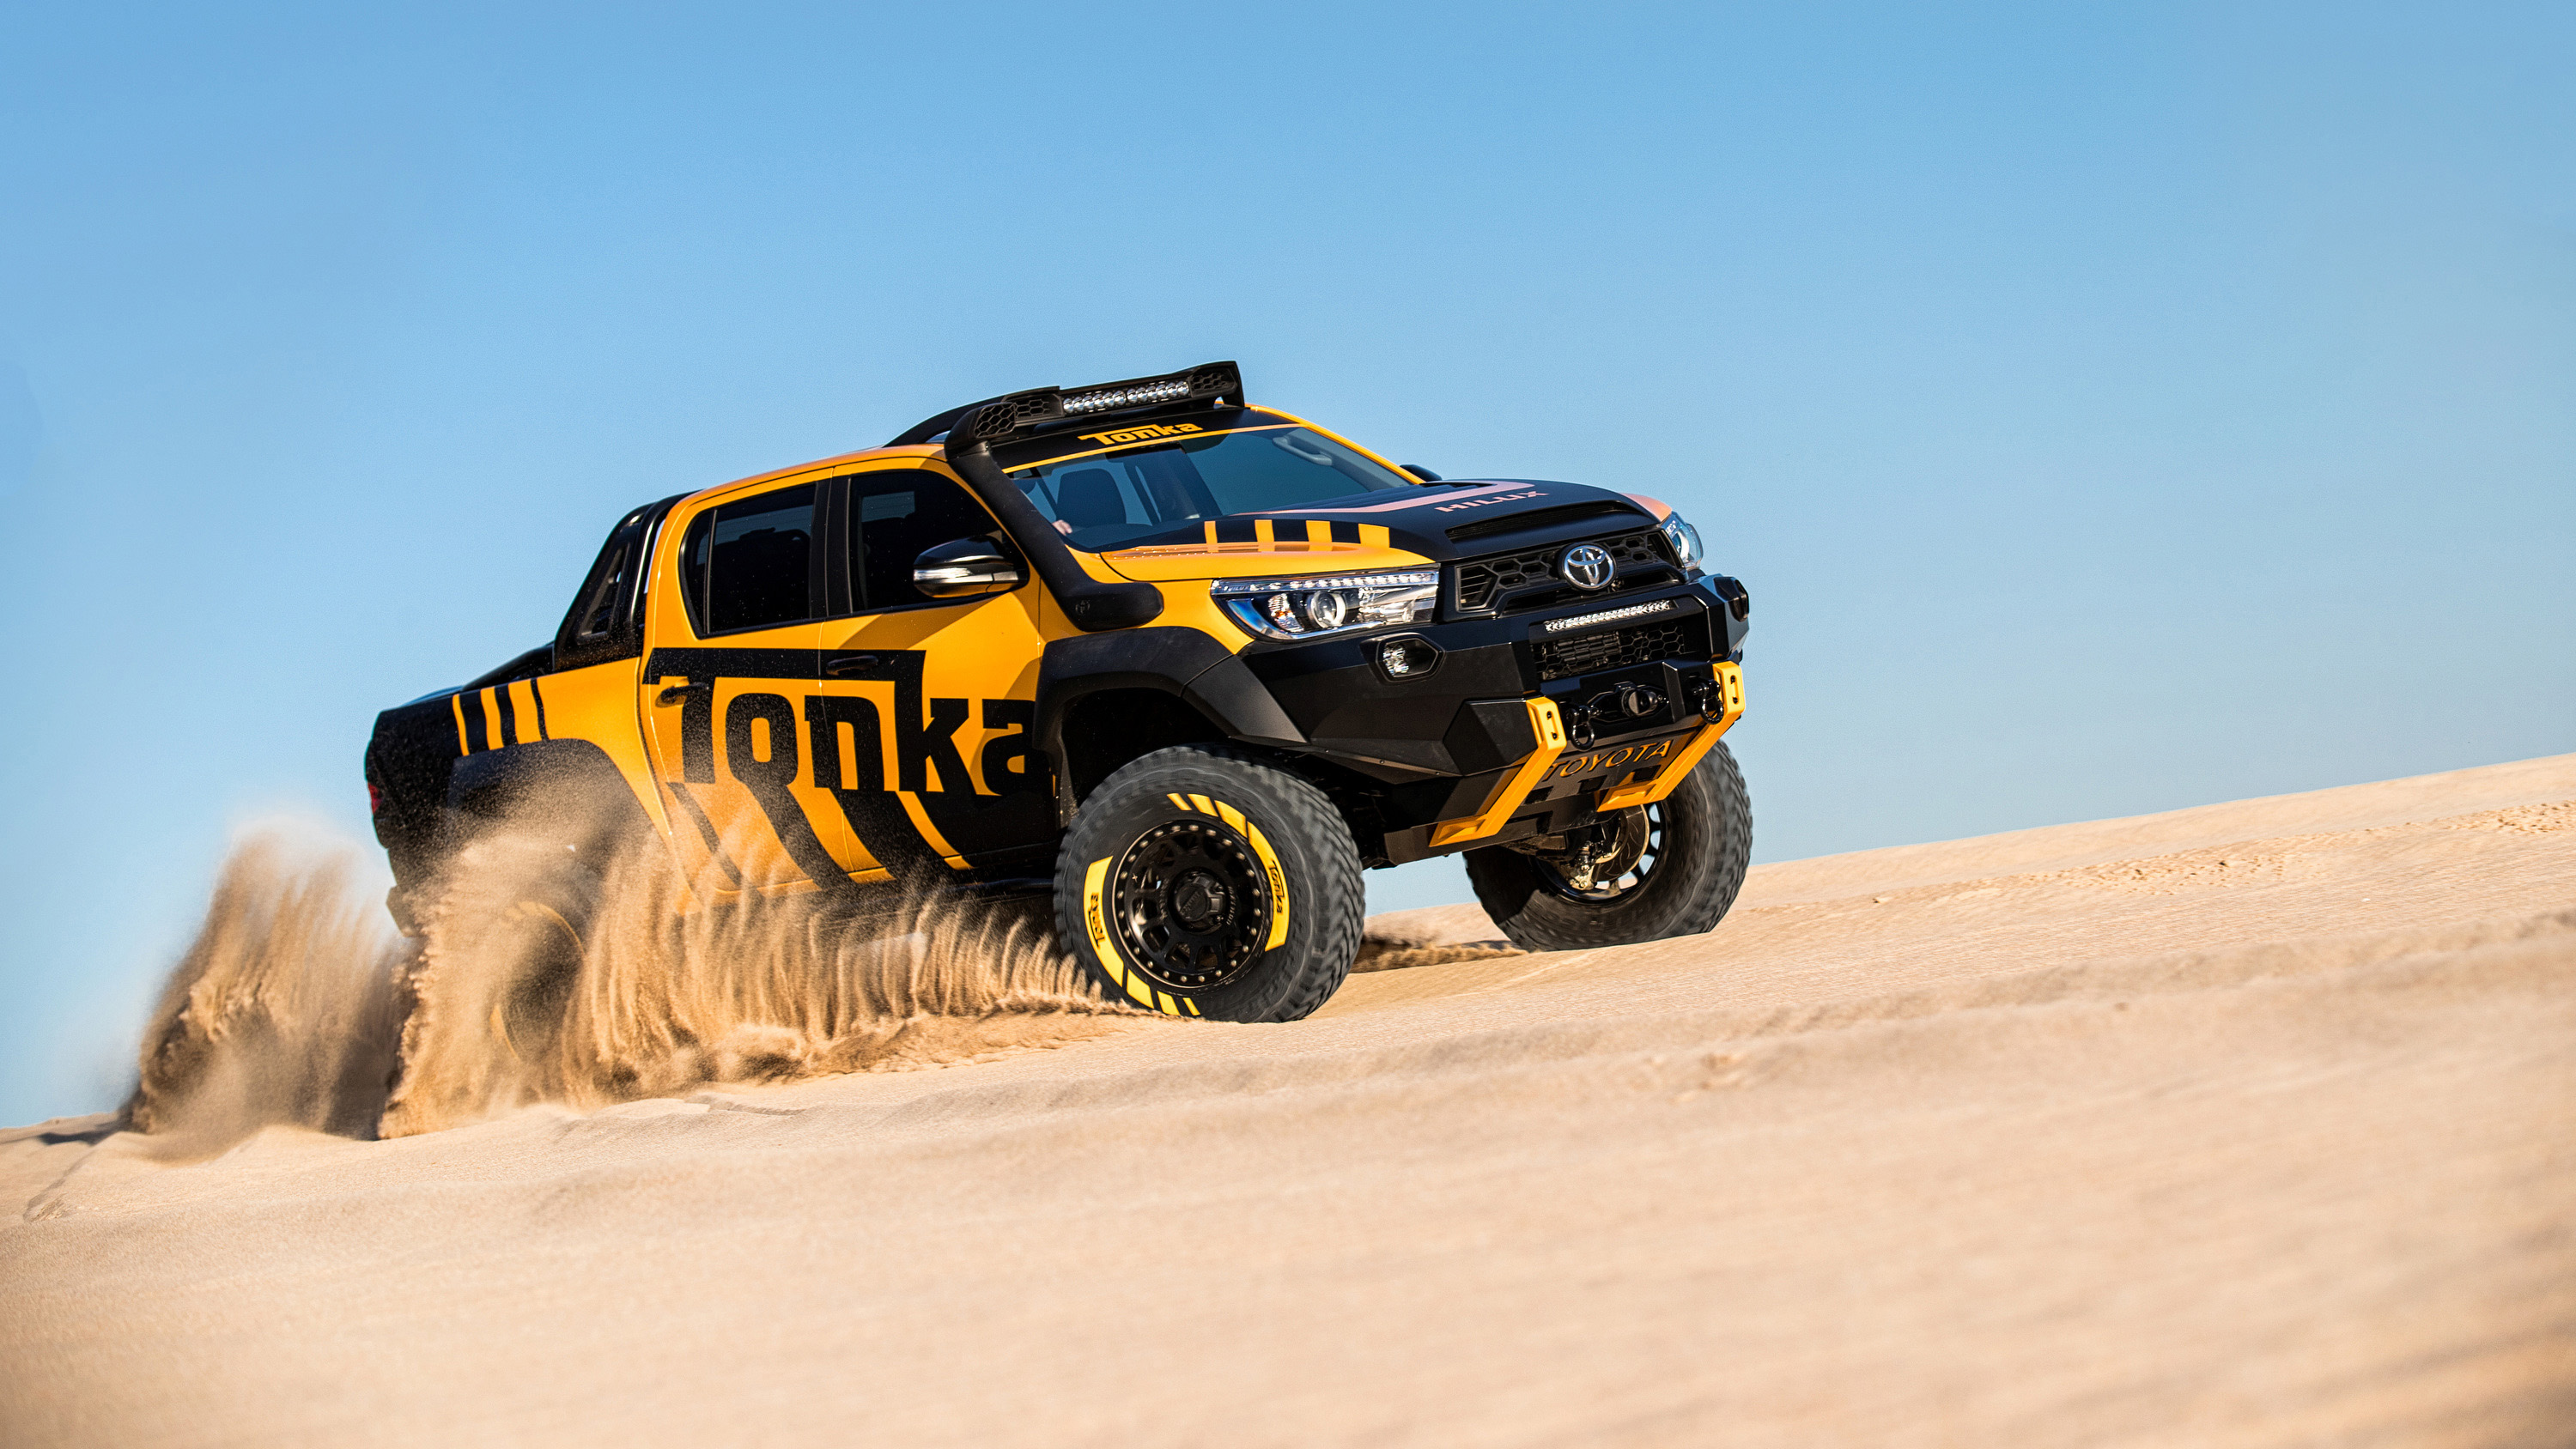 Toyota Hilux Tonka Concept Off Road Wallpaper Hd Car